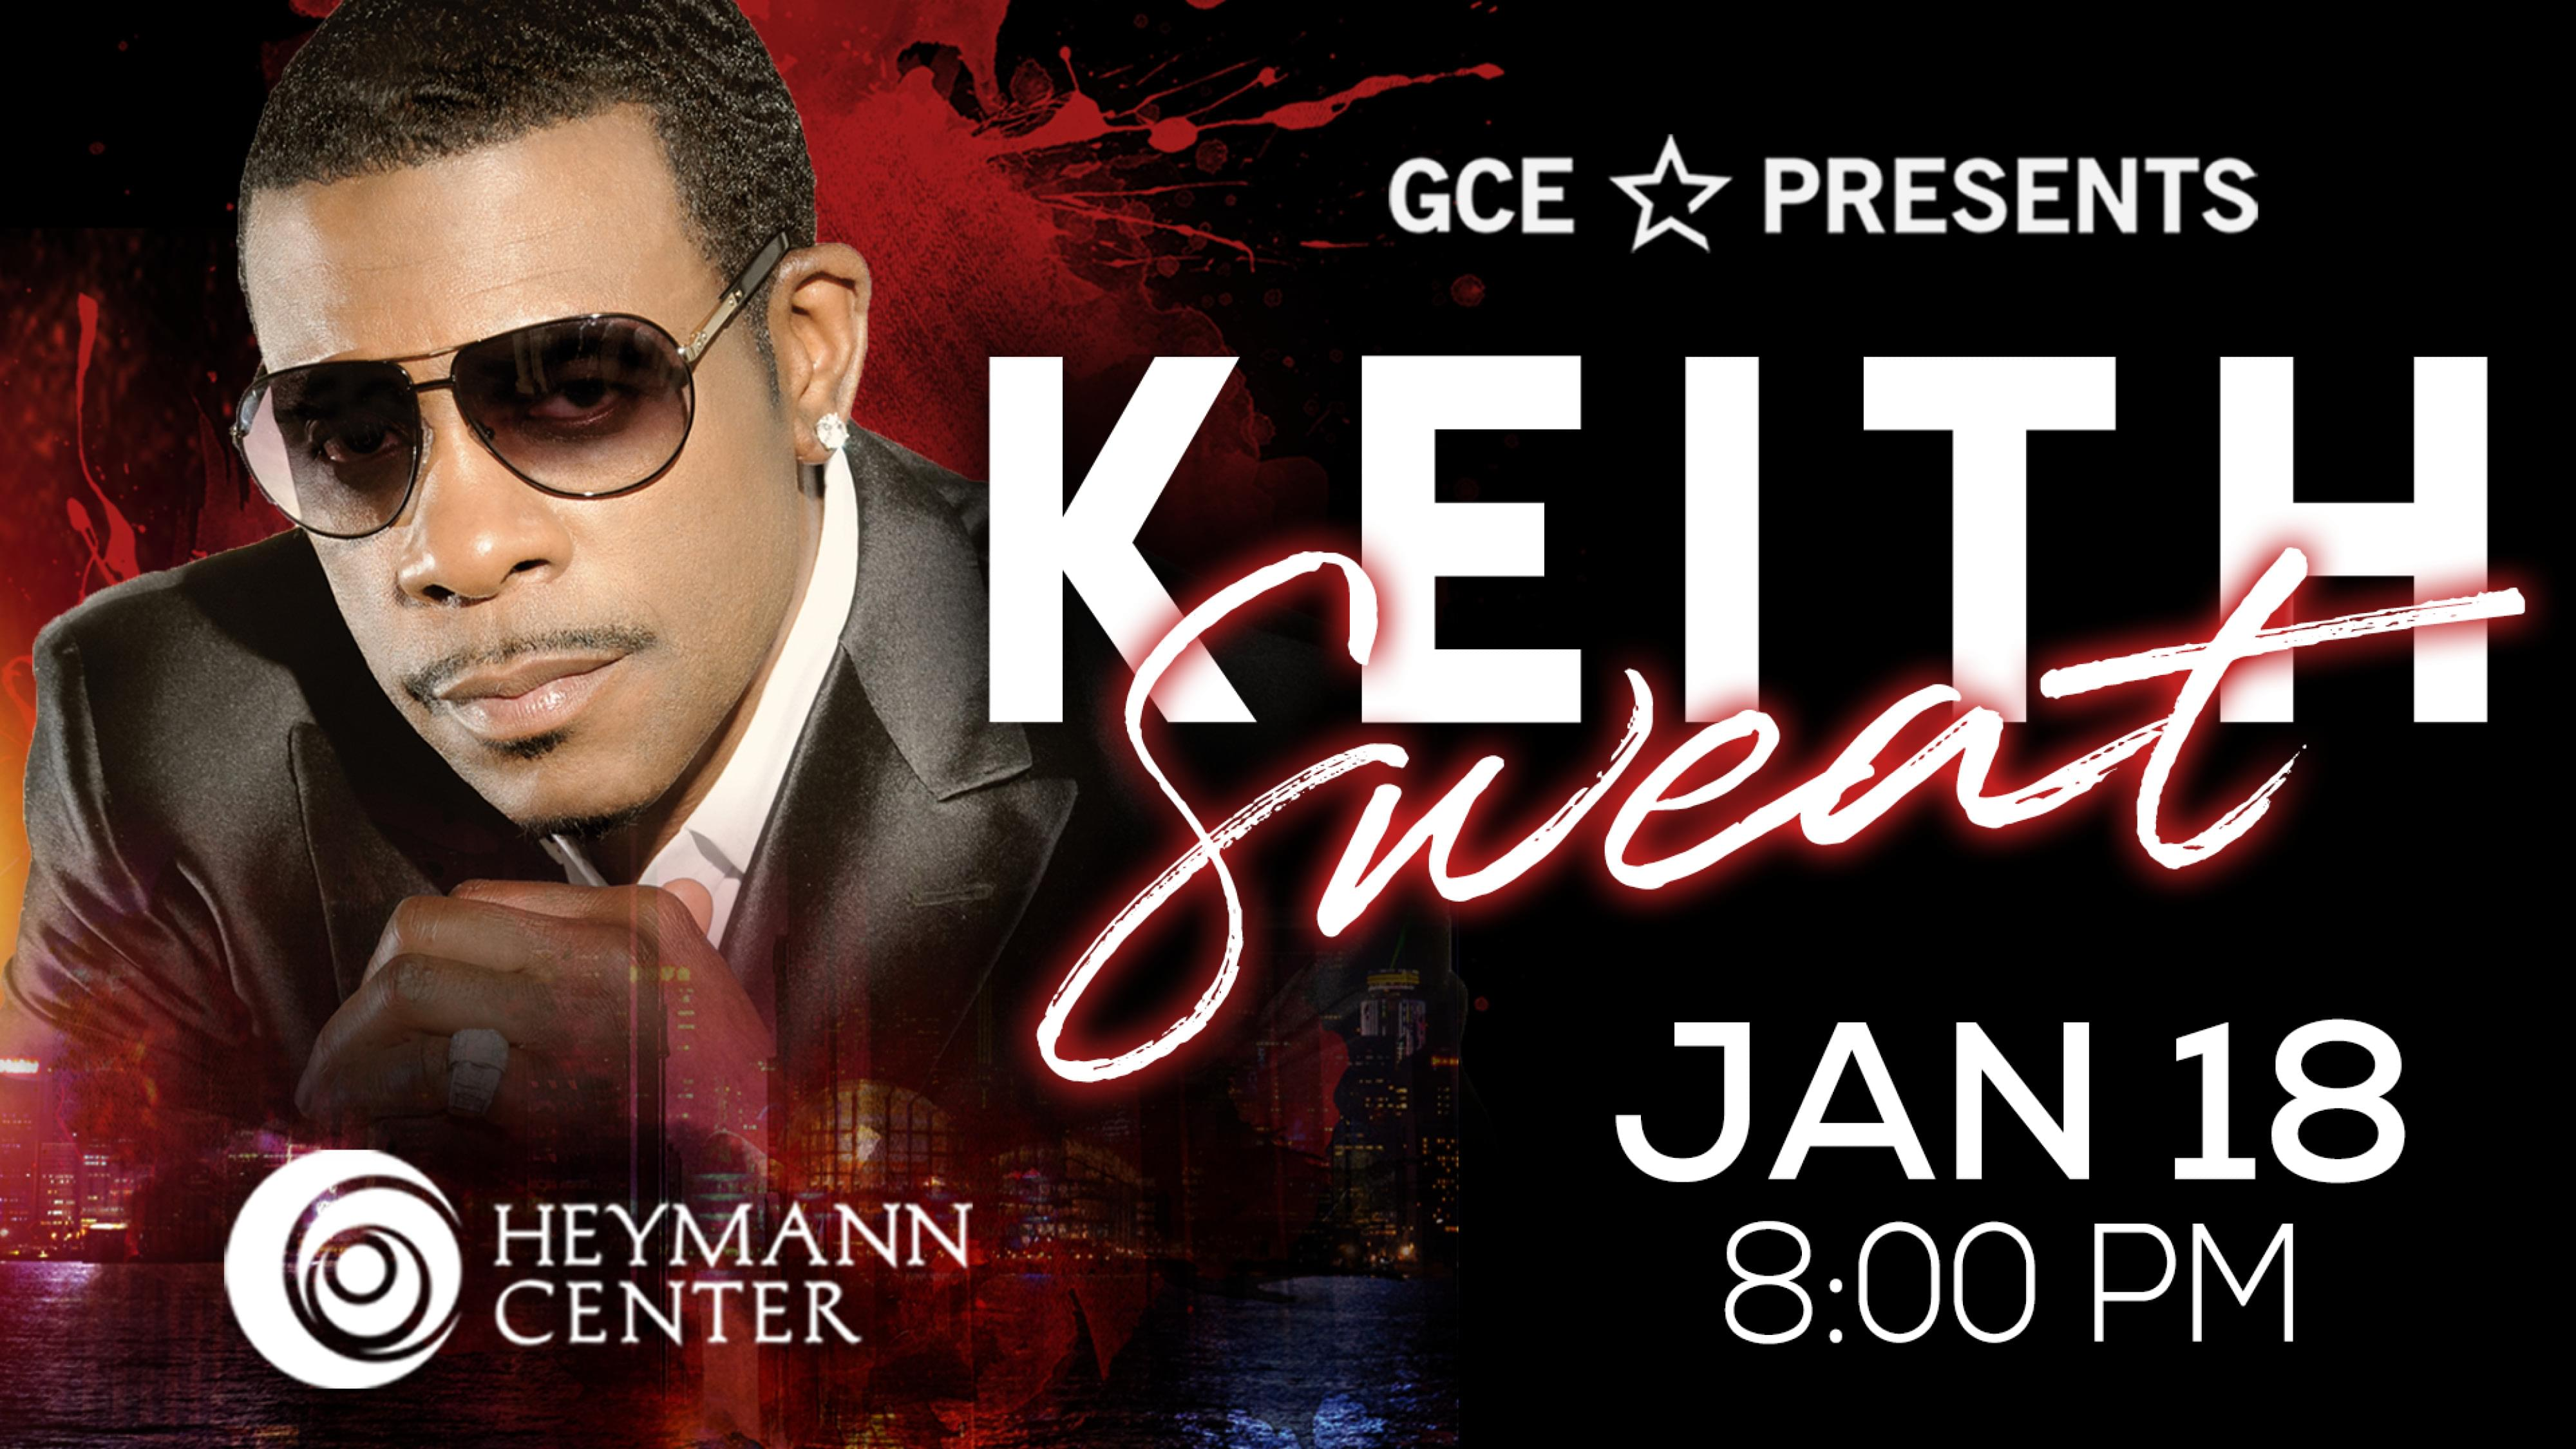 GCE Presents Keith Sweat At The Heymann Center